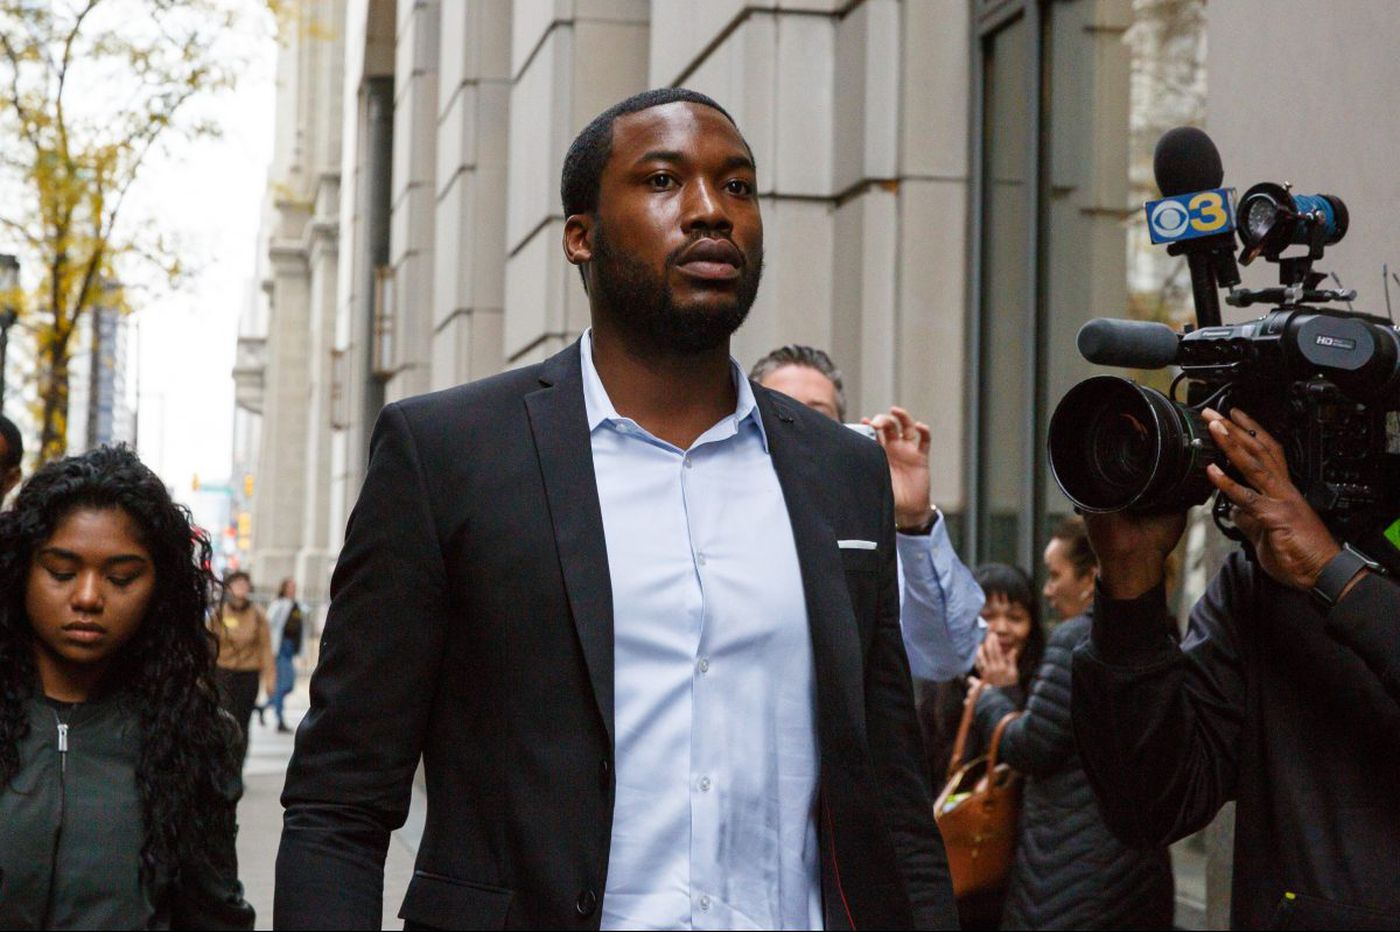 Ex-Philly cop says officer lied to put Meek Mill behind bars